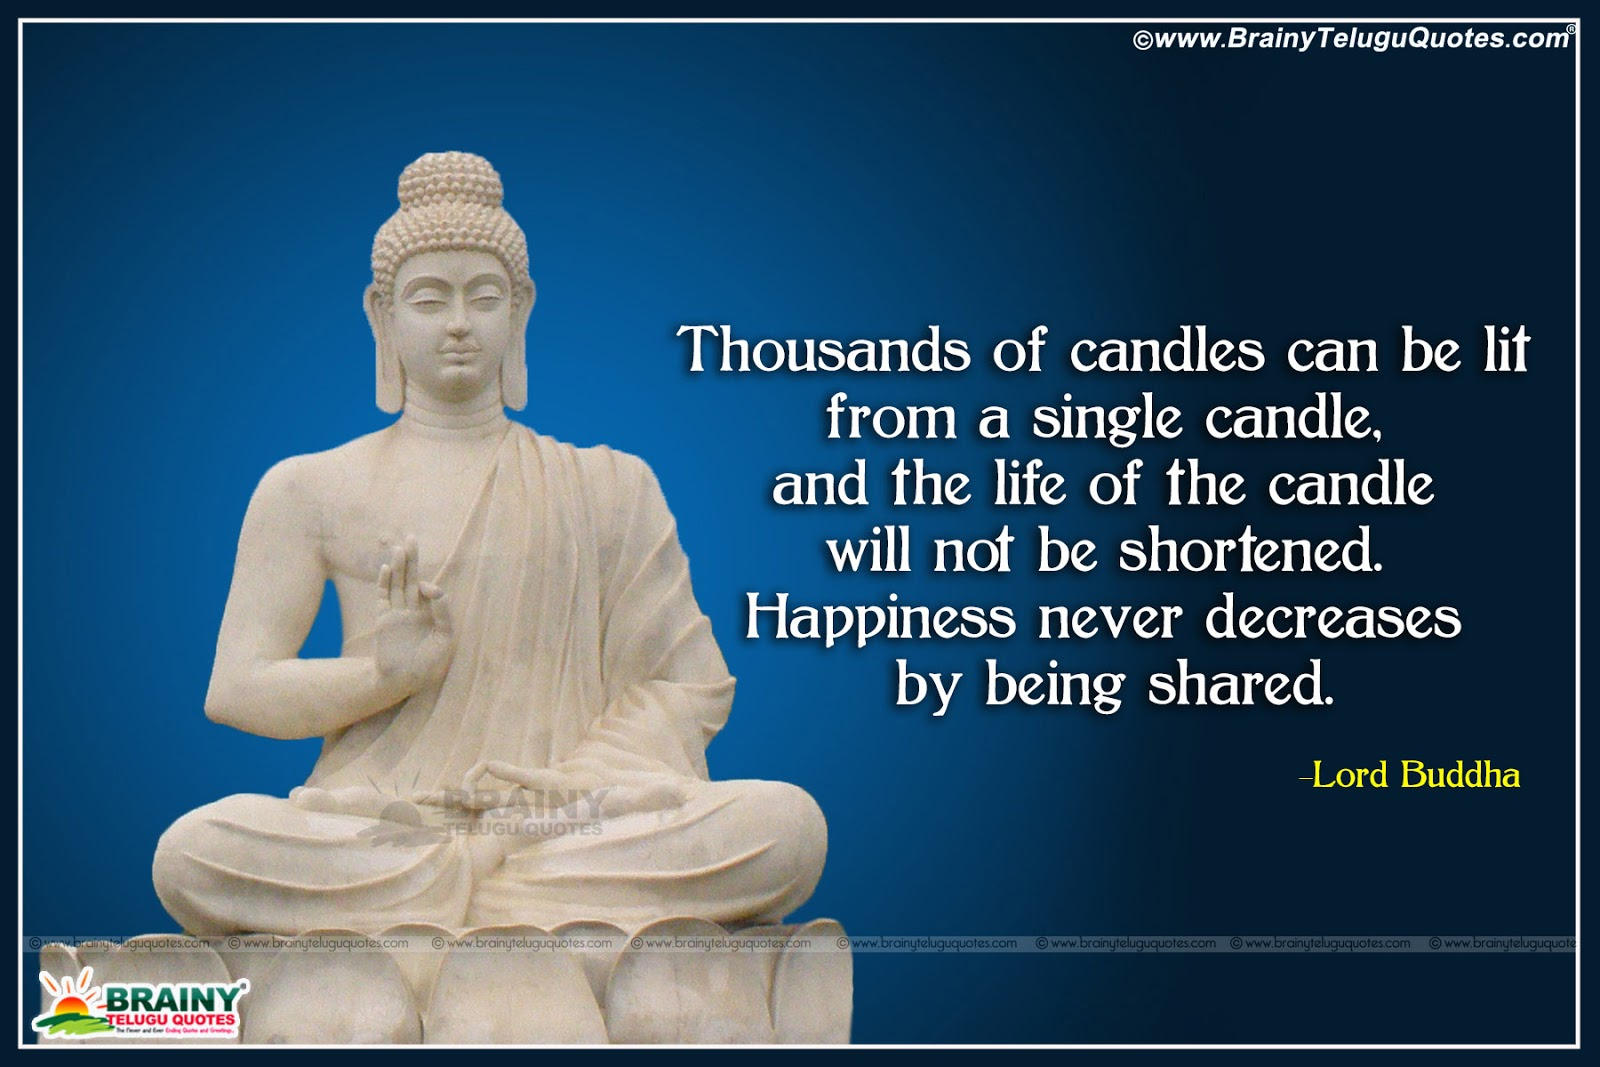 Best Buddha Happiness Quotes And Sayings In English With